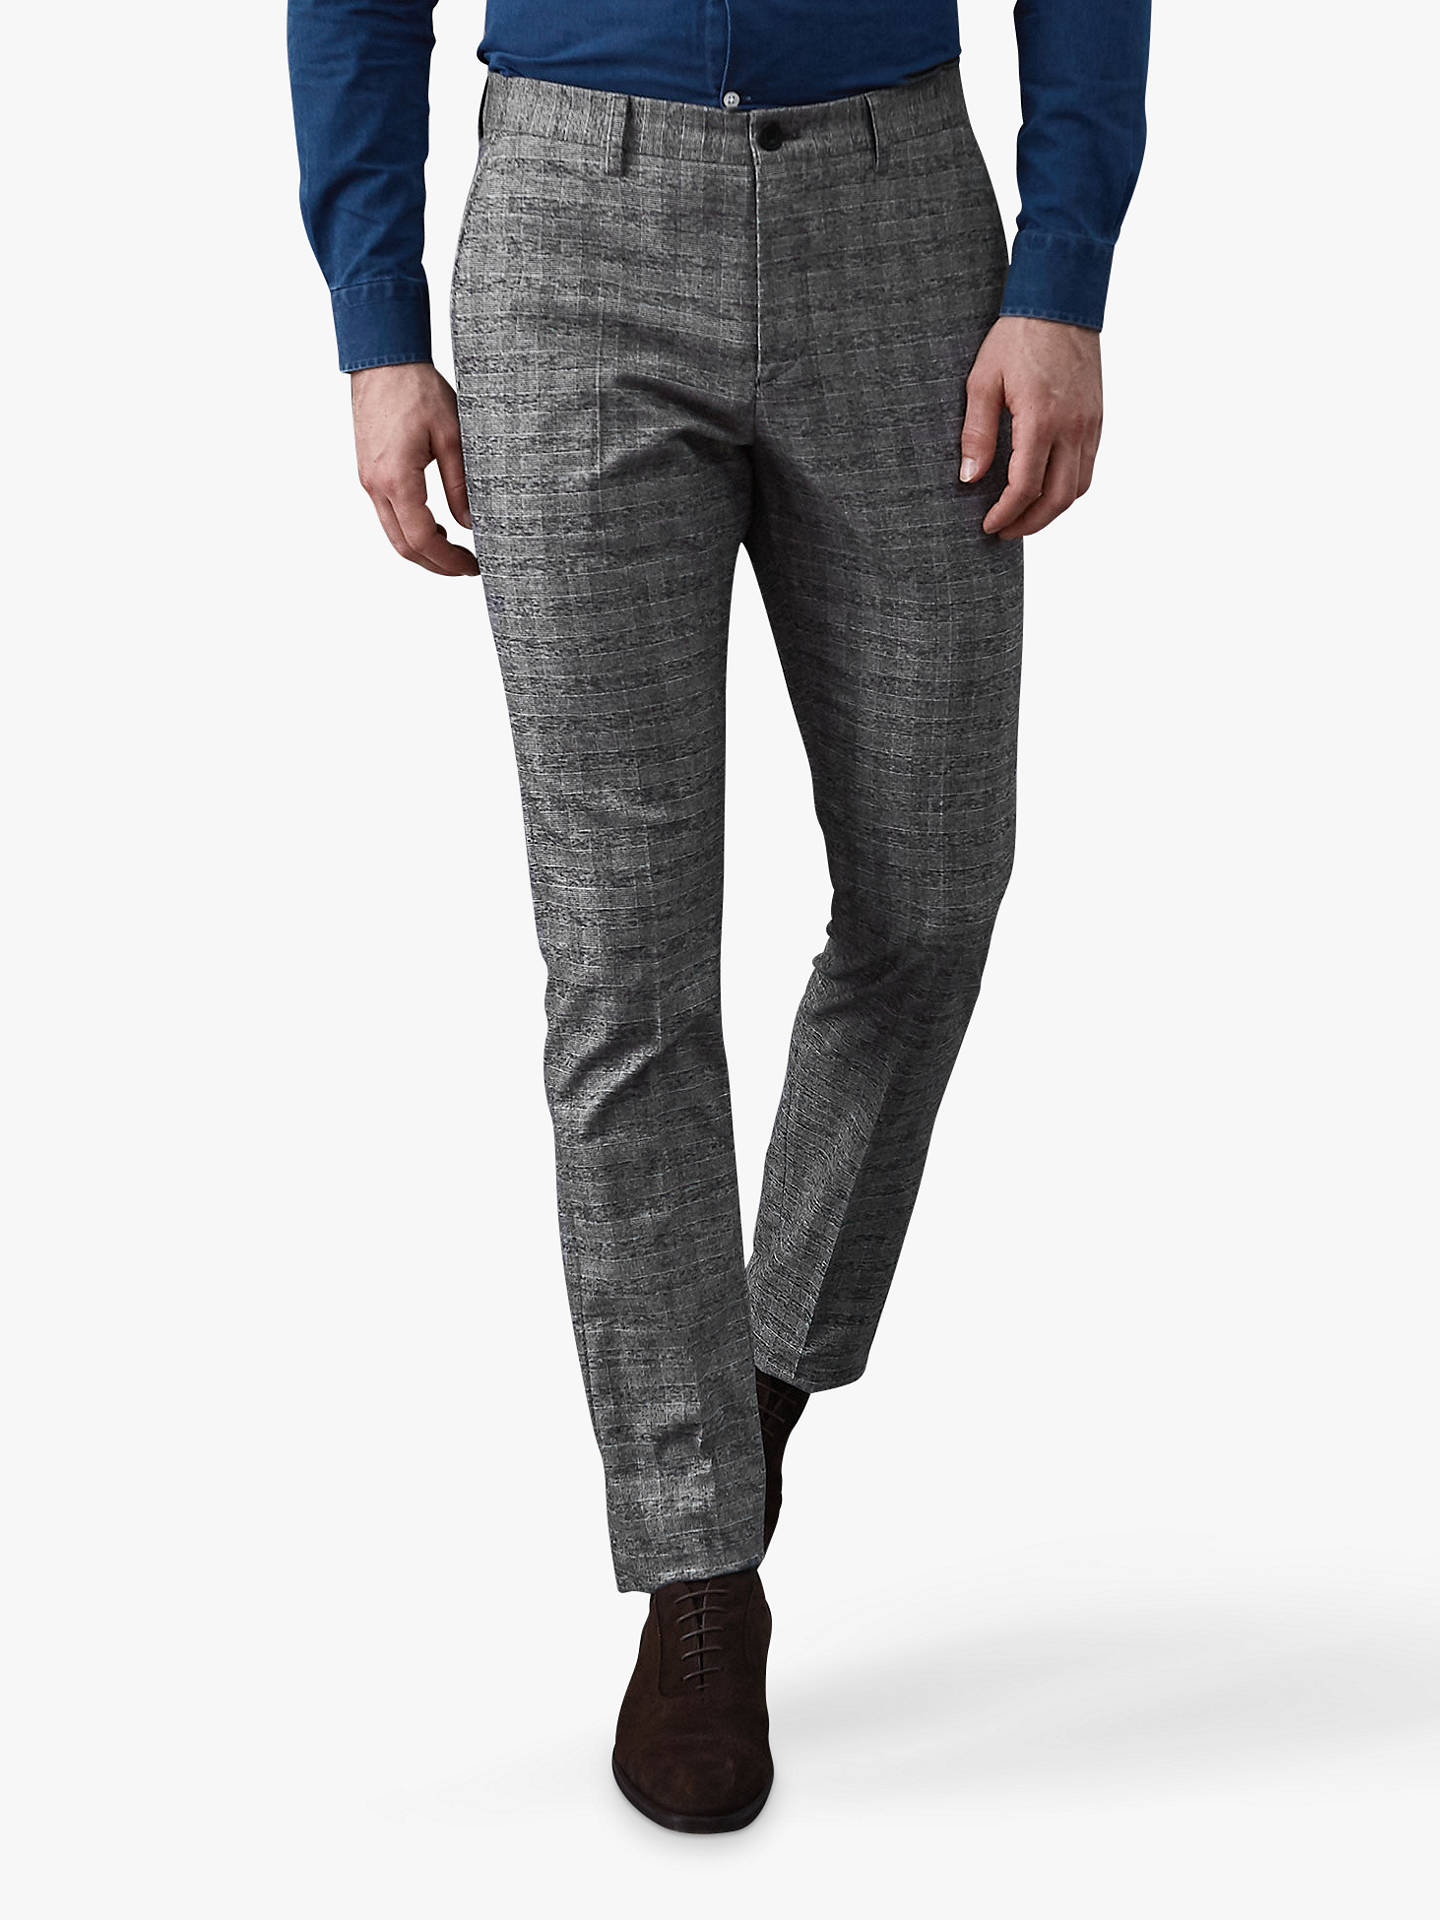 BuyReiss Nano-Slim Fit Prince Trousers, Soft Grey, 36R Online at johnlewis.com